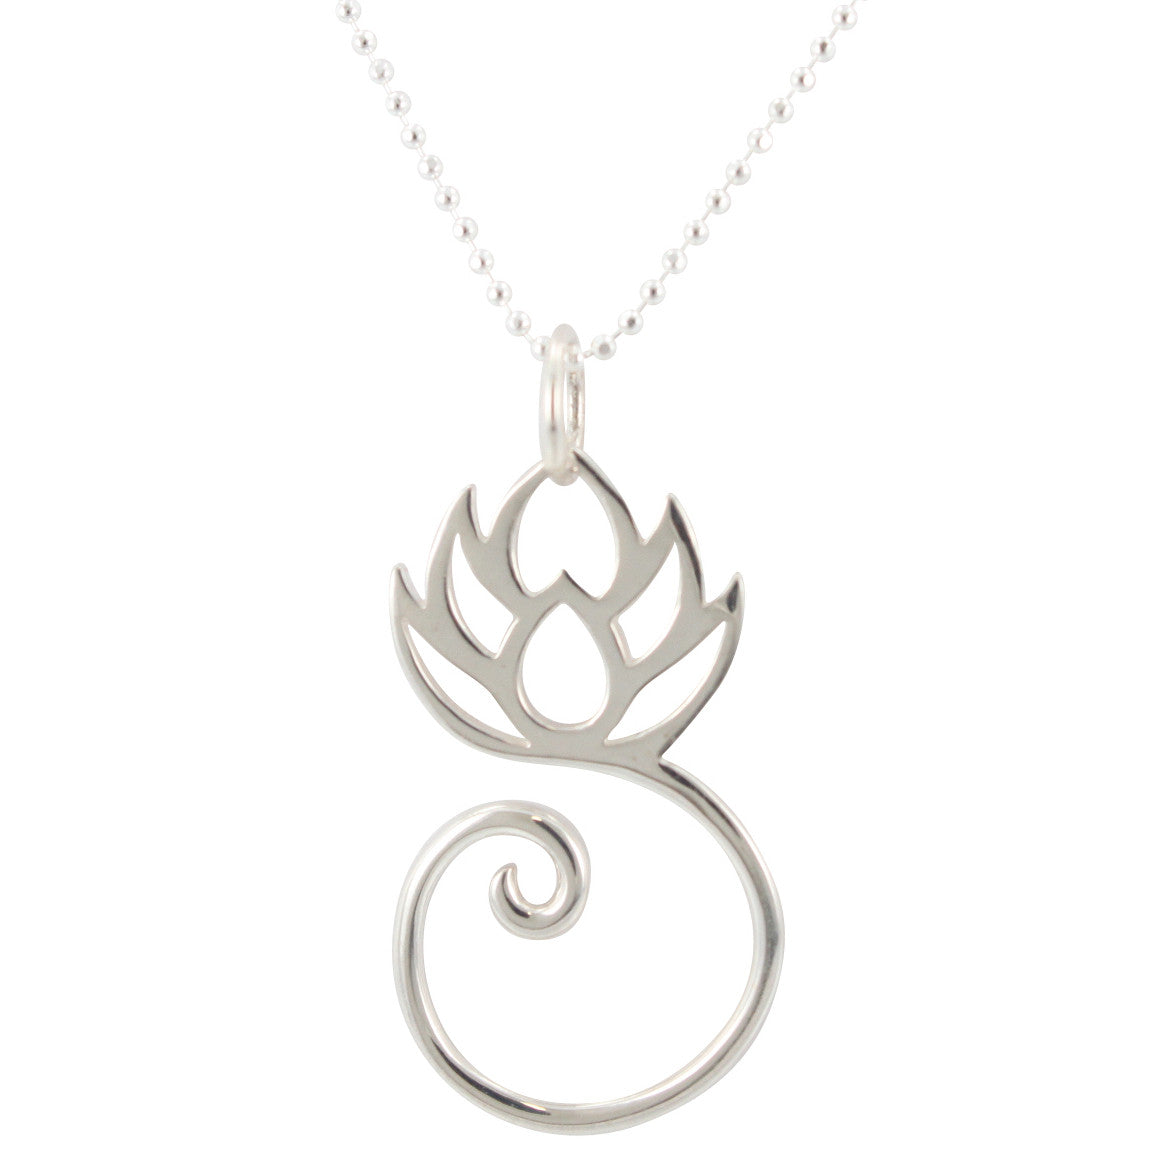 Sterling silver lotus flower charm holder necklace 8438 ss zoe sterling silver lotus flower charm holder necklace 8438 ss izmirmasajfo